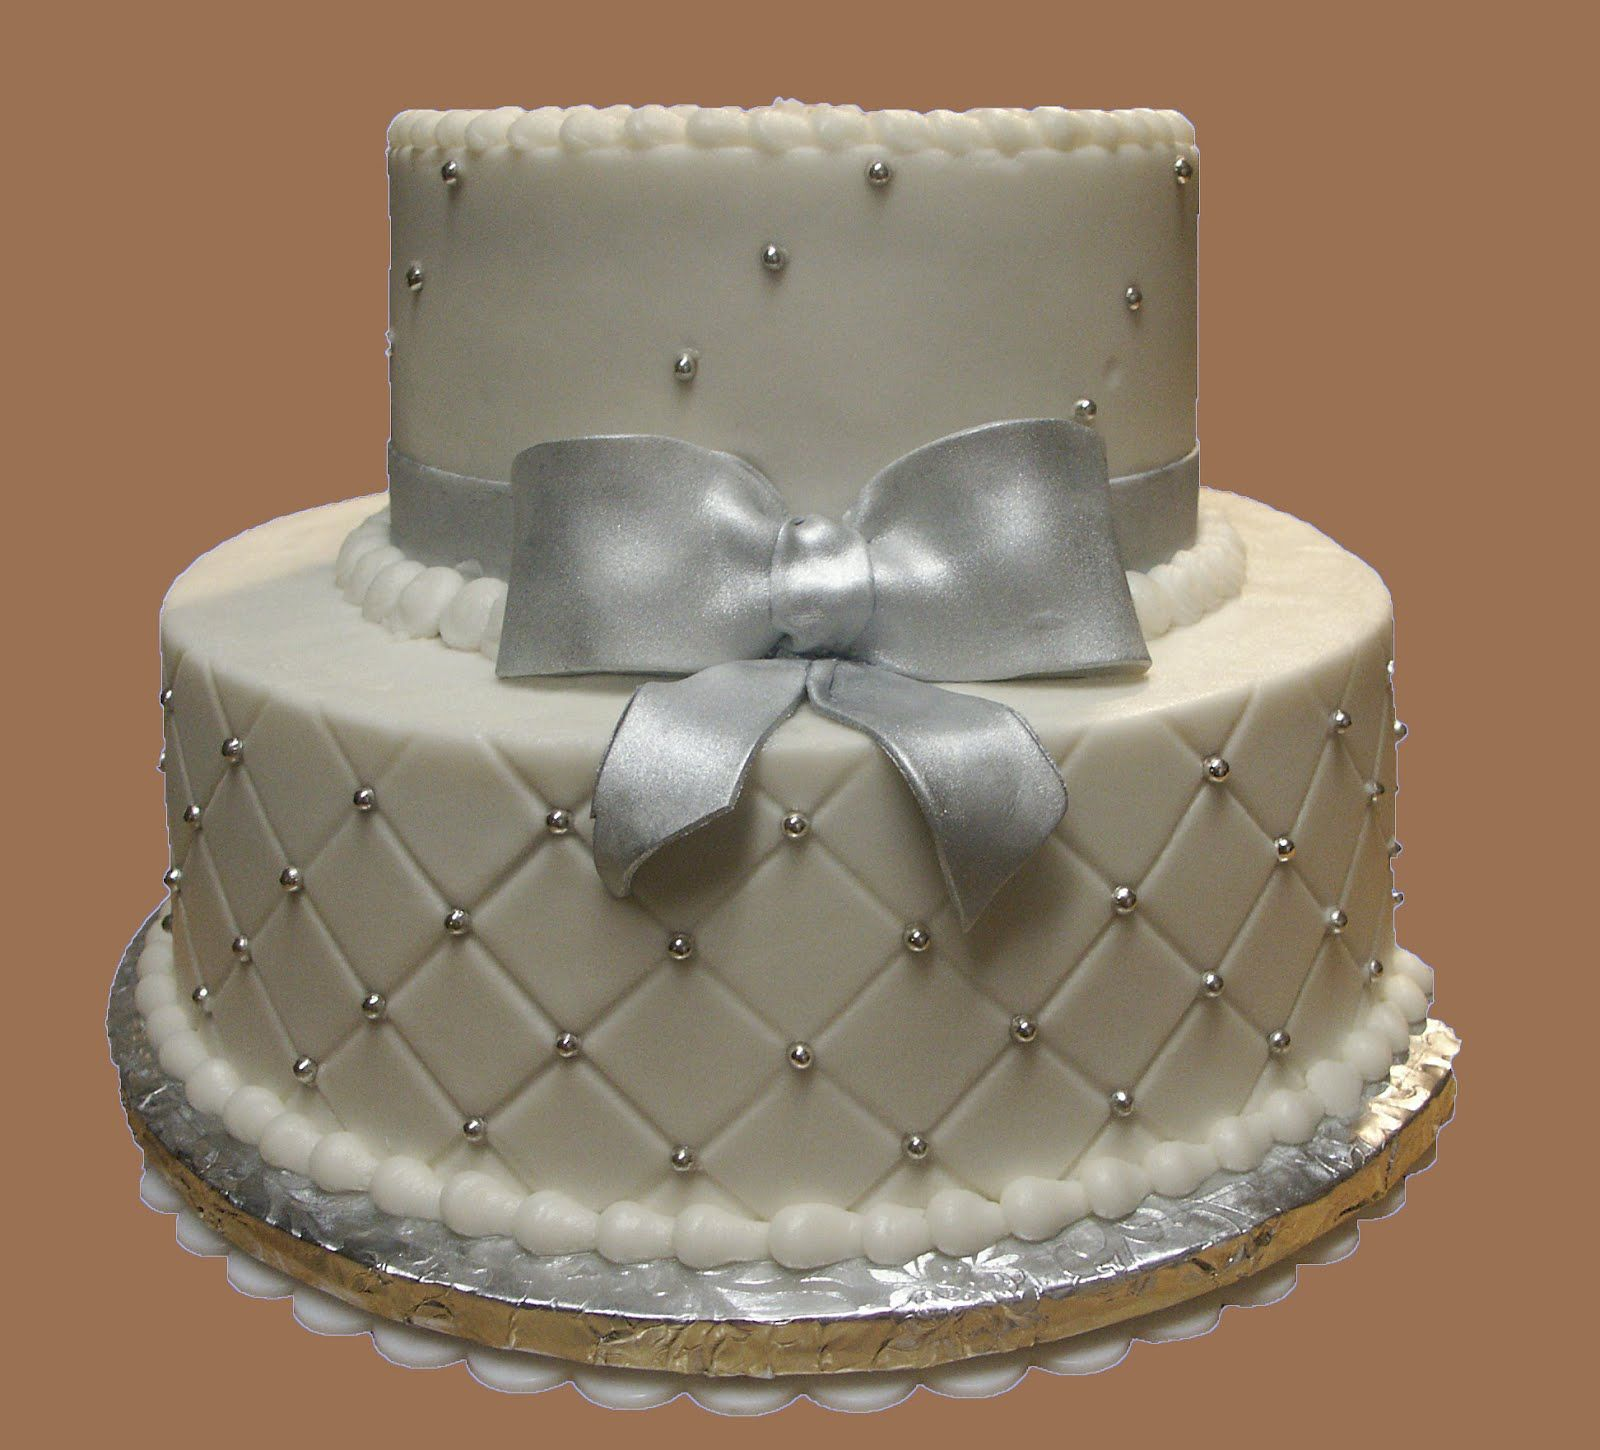 Cake Ideas For Wedding Anniversary: Cakes And Cakes: 25TH Wedding Anniversary *Buttercream And